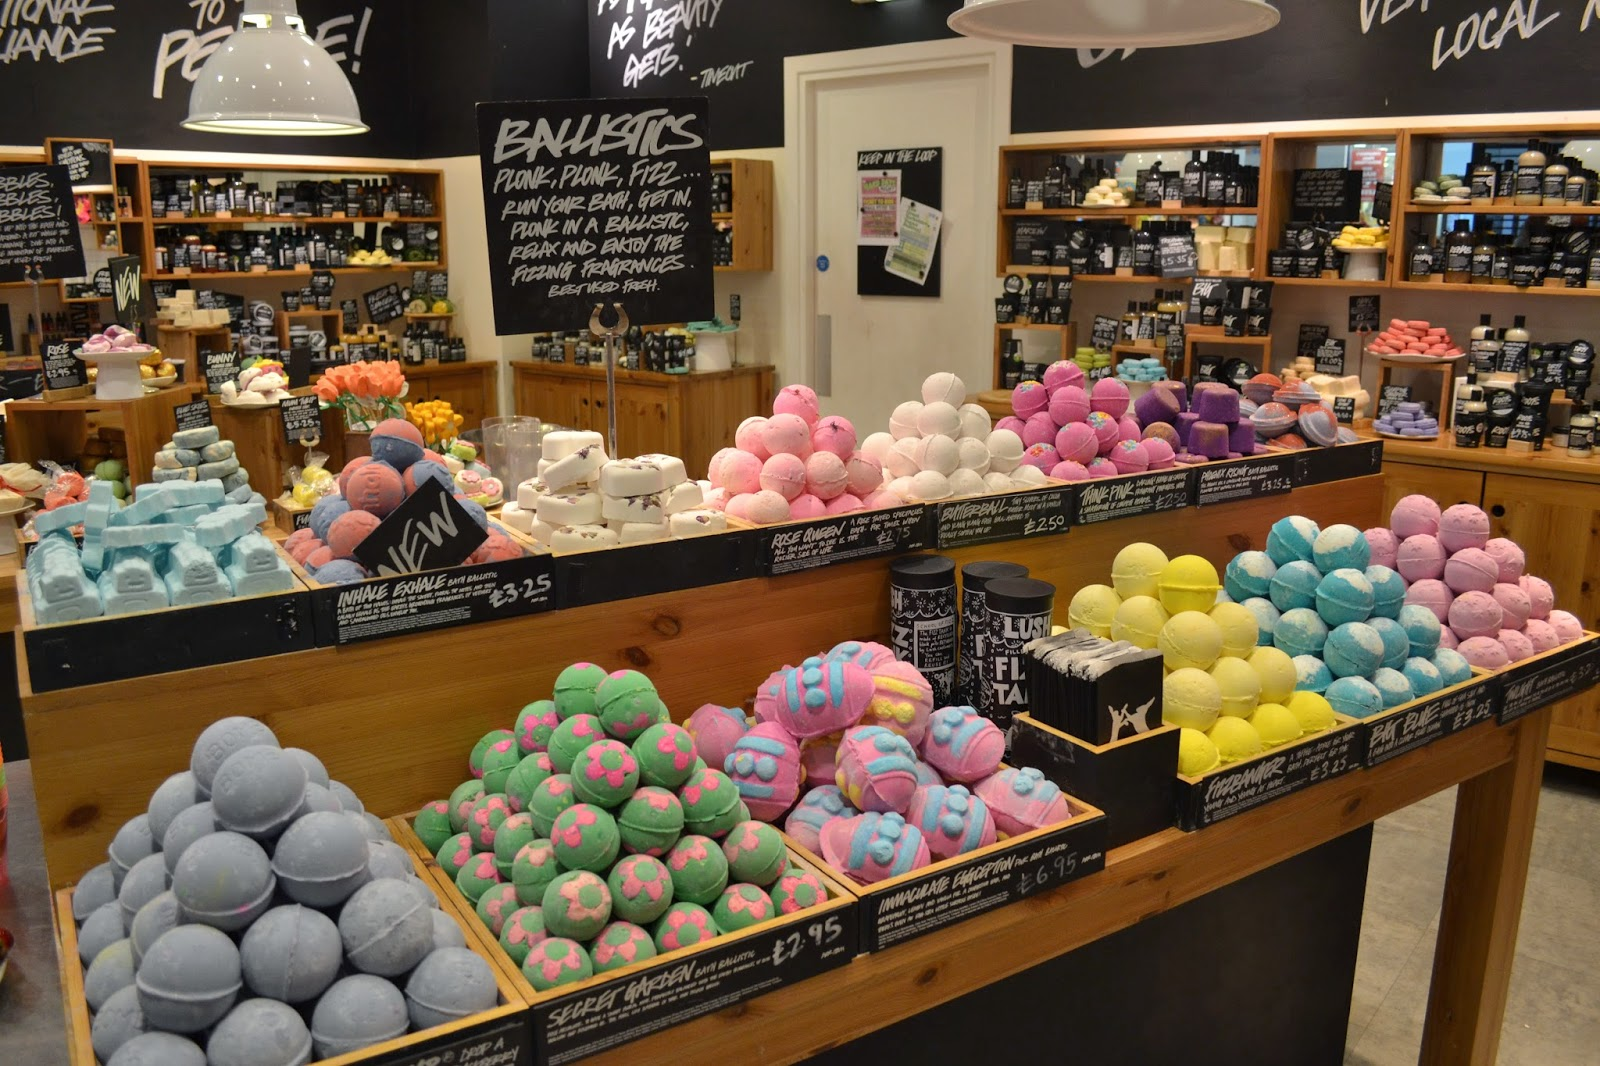 lush-bath-bomb-display